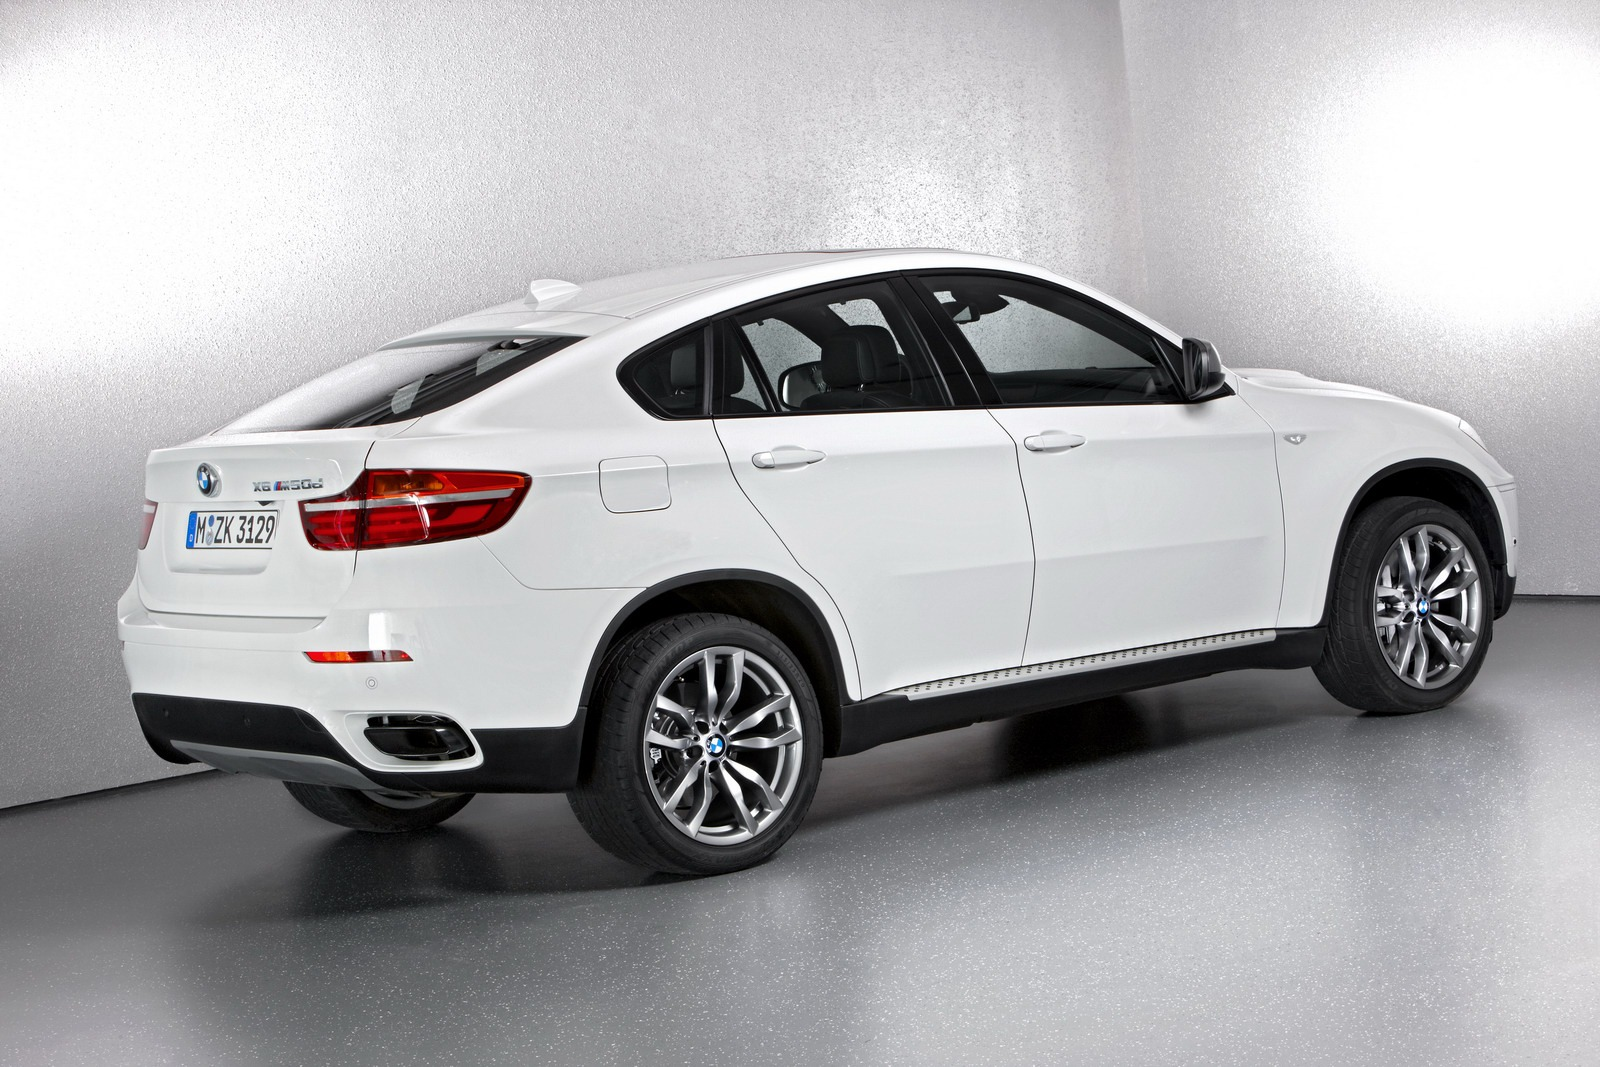 2013 bmw x6 m50d equipment list revealed autoevolution. Black Bedroom Furniture Sets. Home Design Ideas